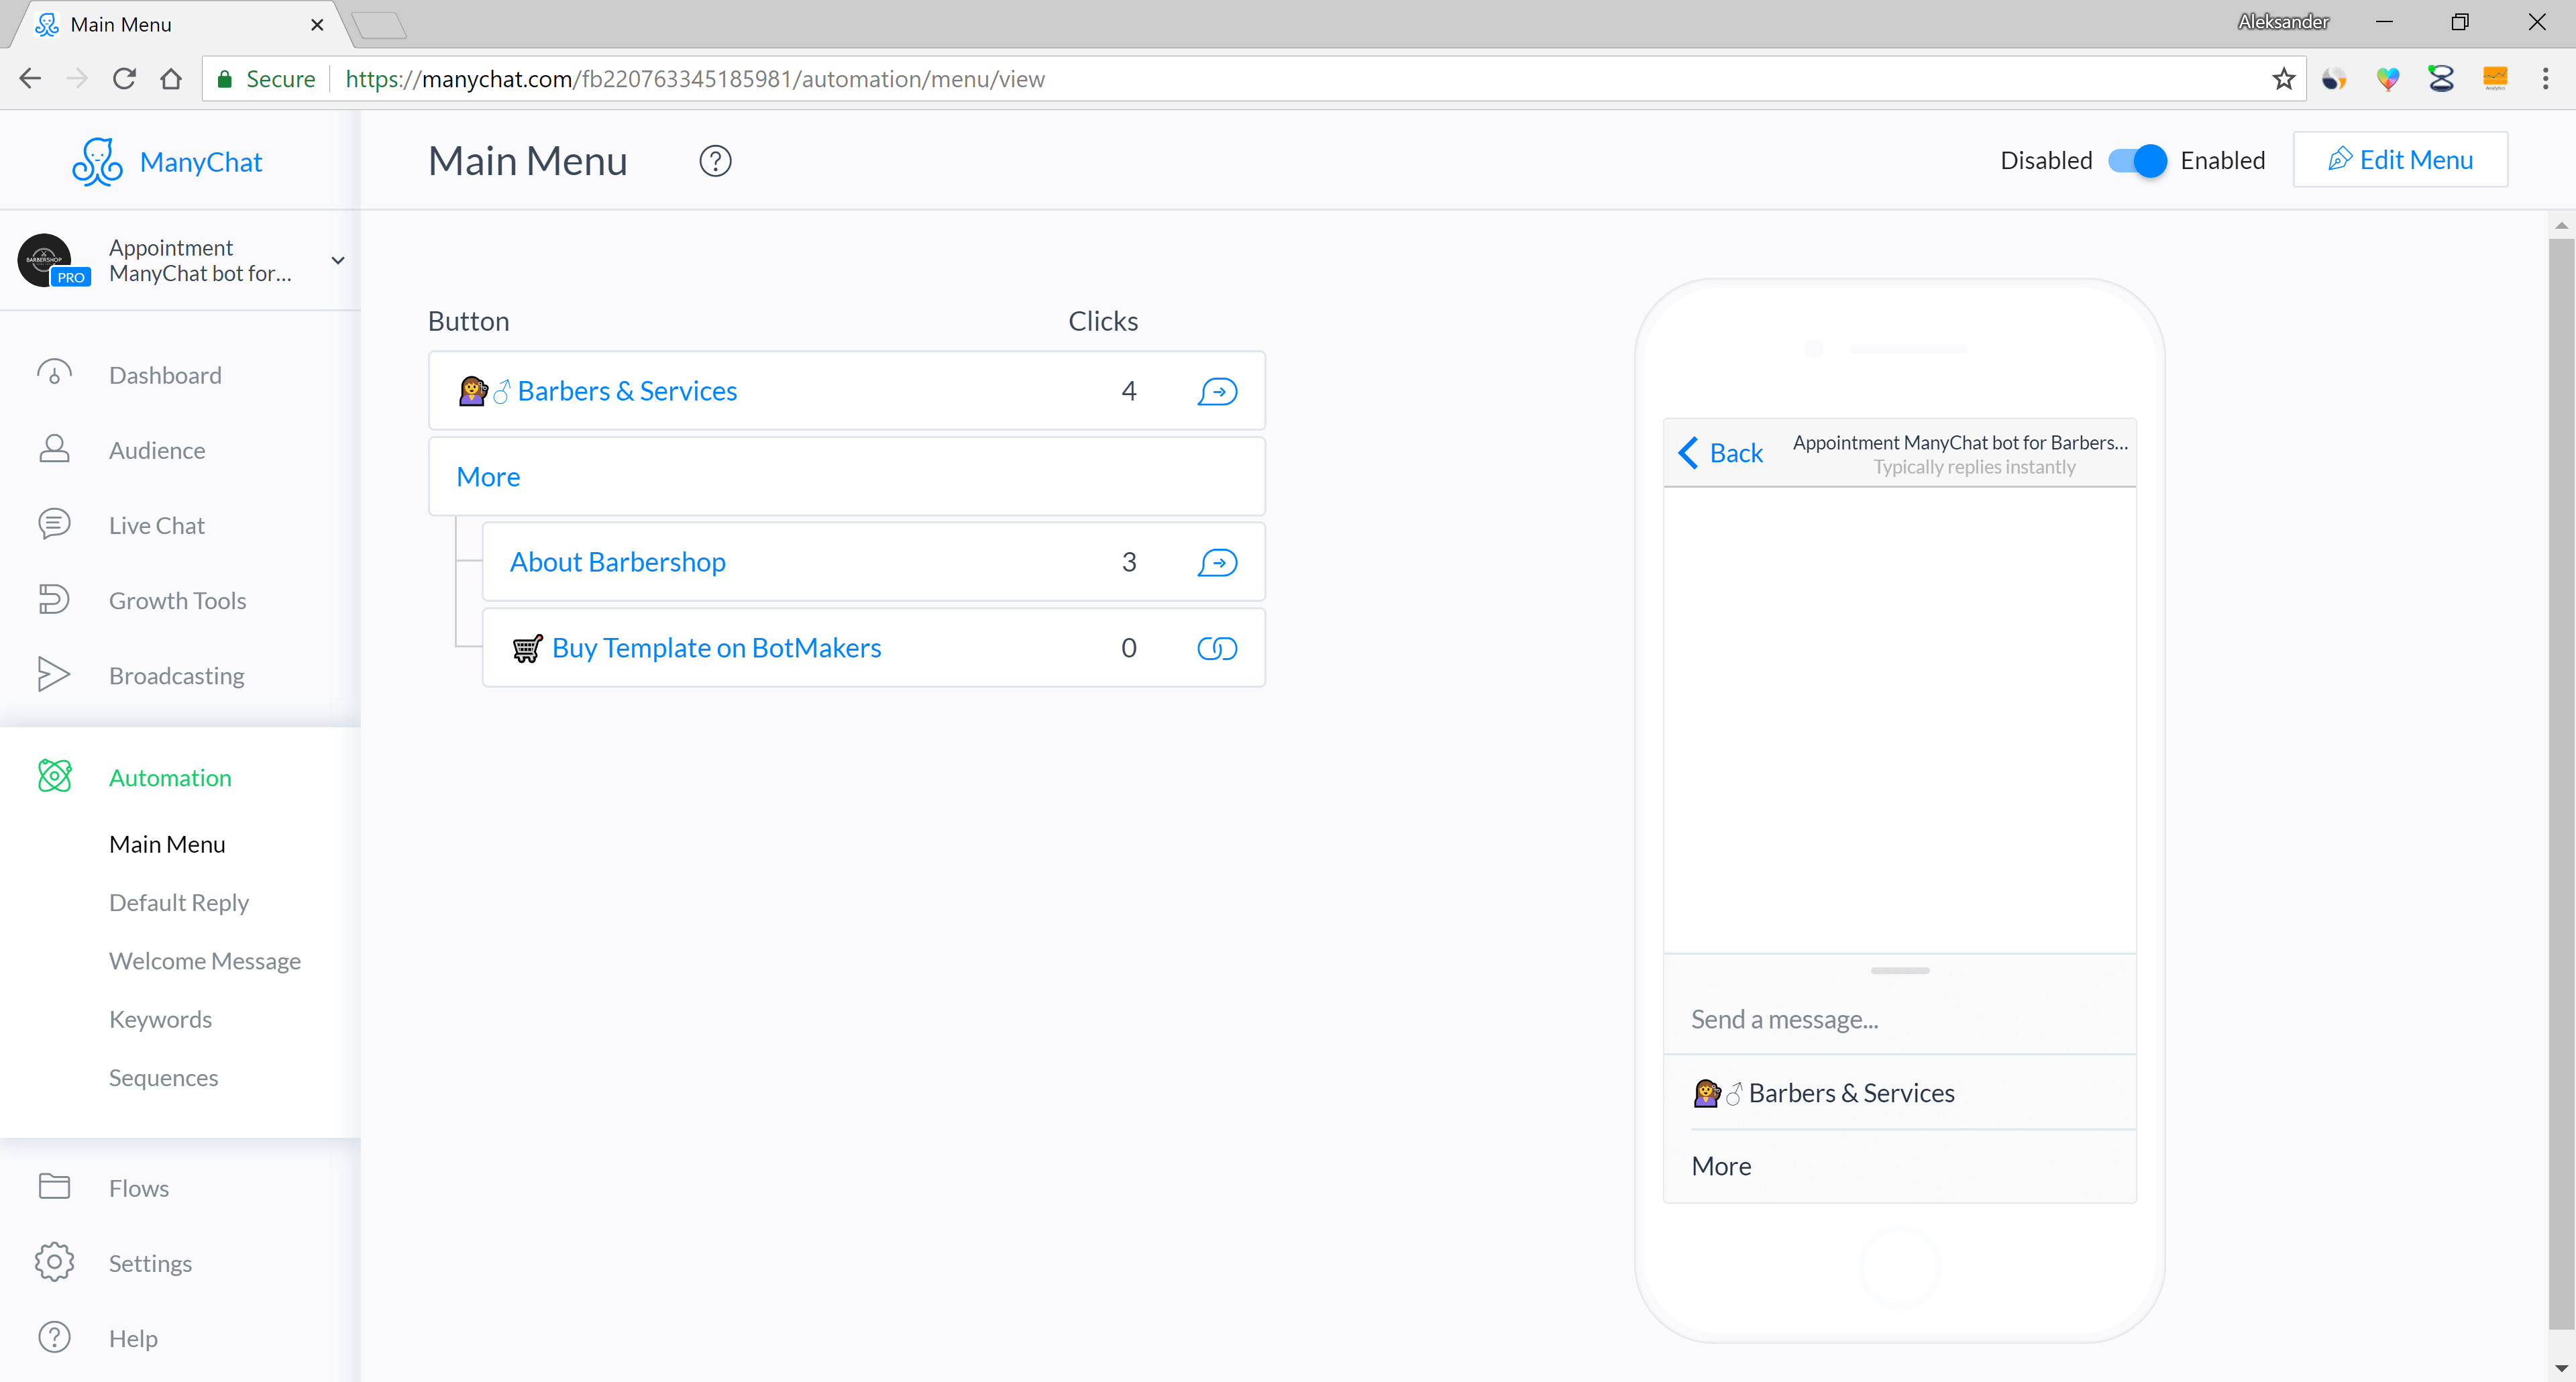 Chatfuel and ManyChat flow editor screenshot for Appointment Messenger Chatbot for Barbershops